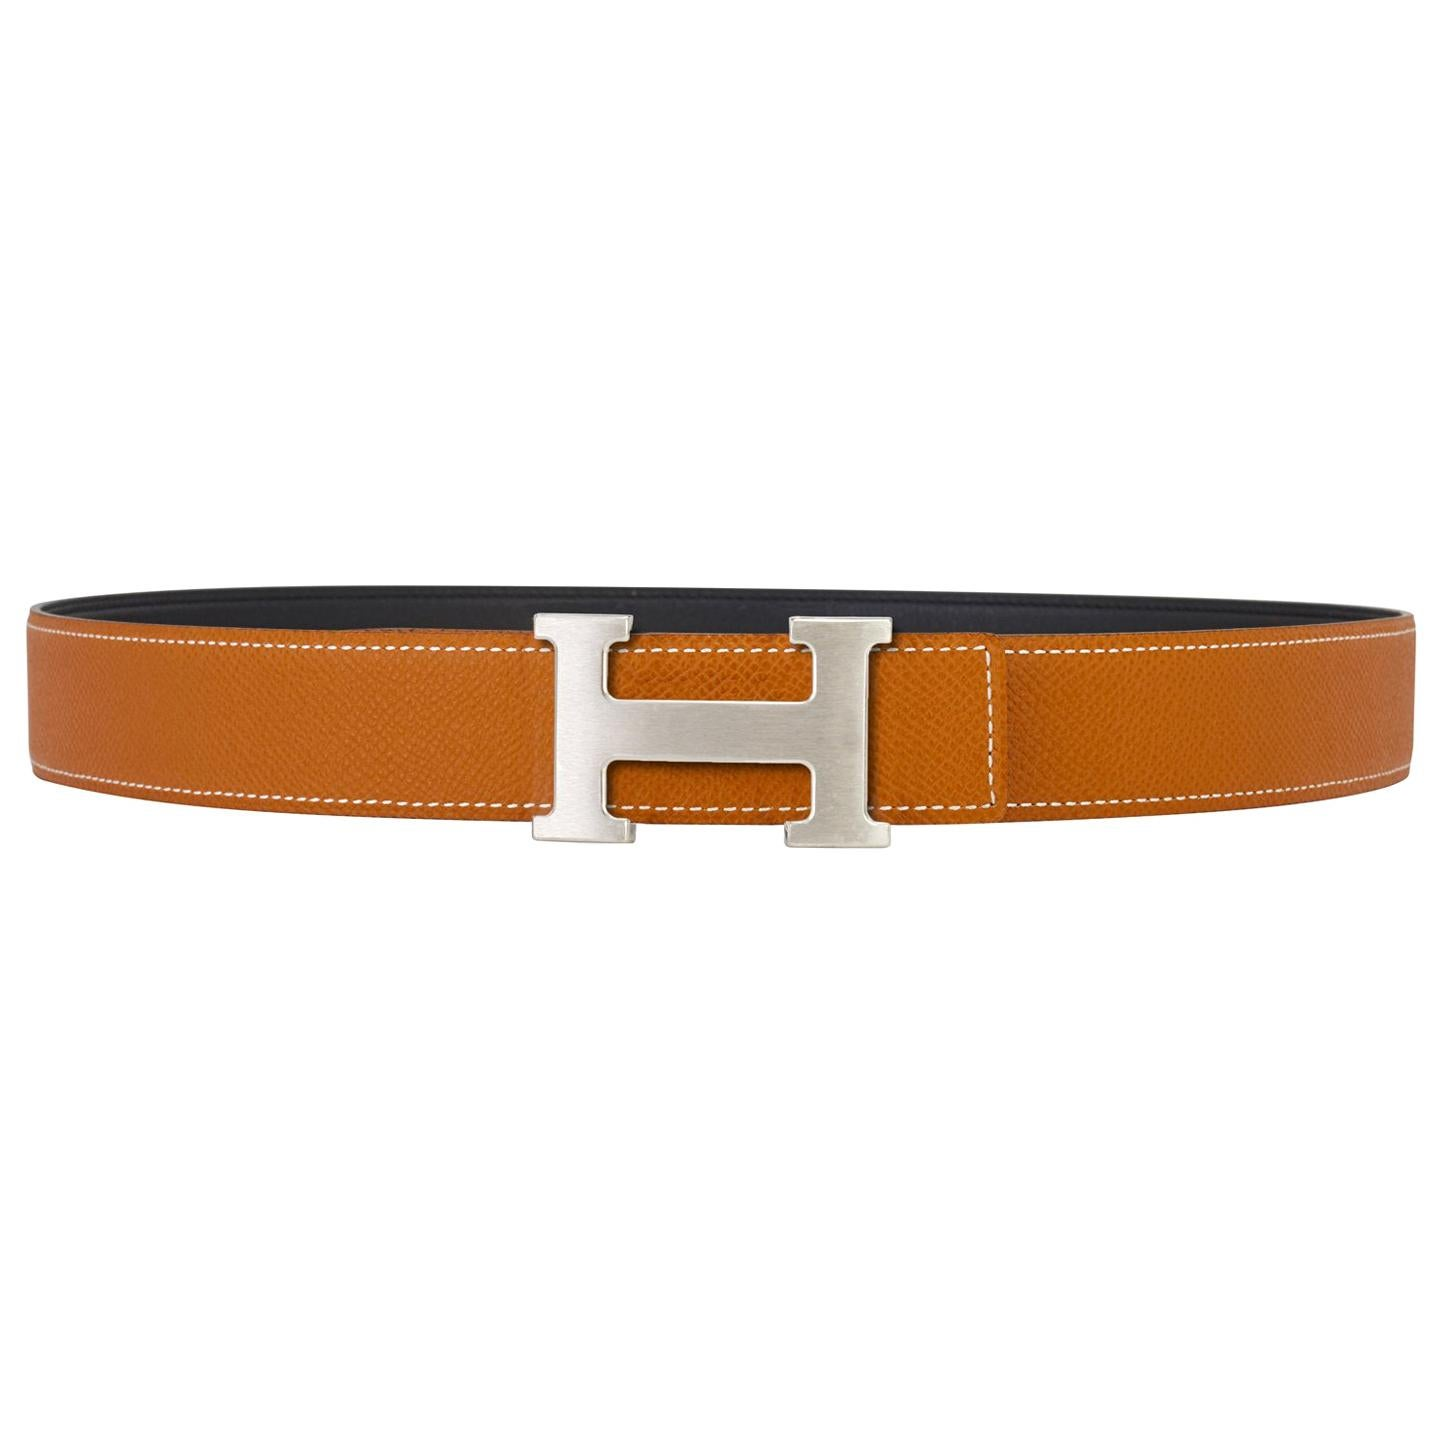 Hermes Gold and Black Reversible Two Colors 32mm H Belt Kit Silver Buckle 85cm